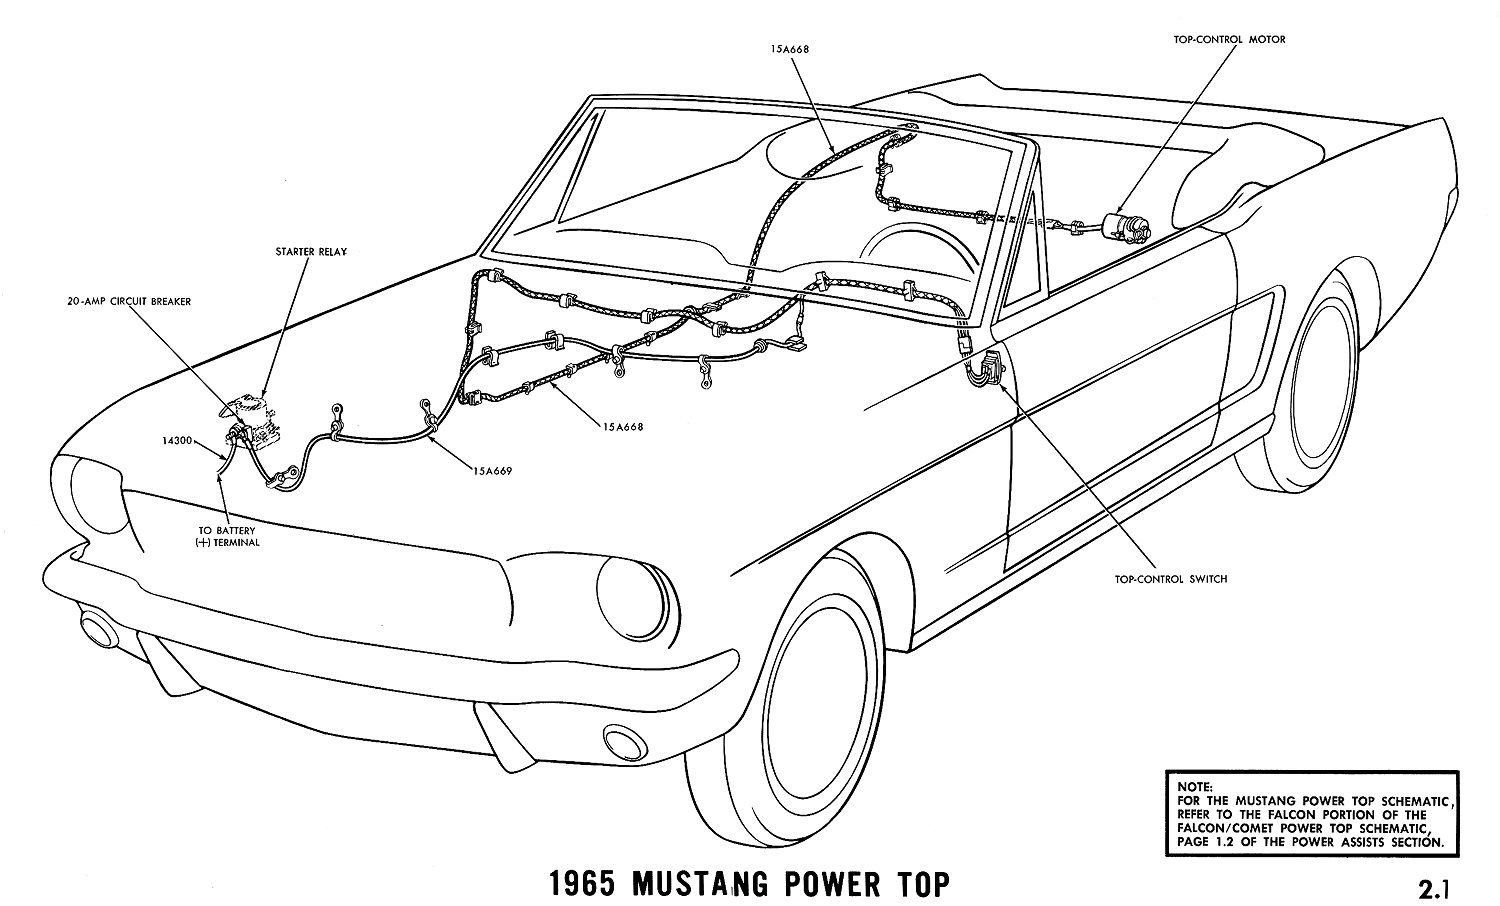 1965 mustang wiring diagrams average joe restoration 1965 mustang power top pictorial or schematic asfbconference2016 Gallery